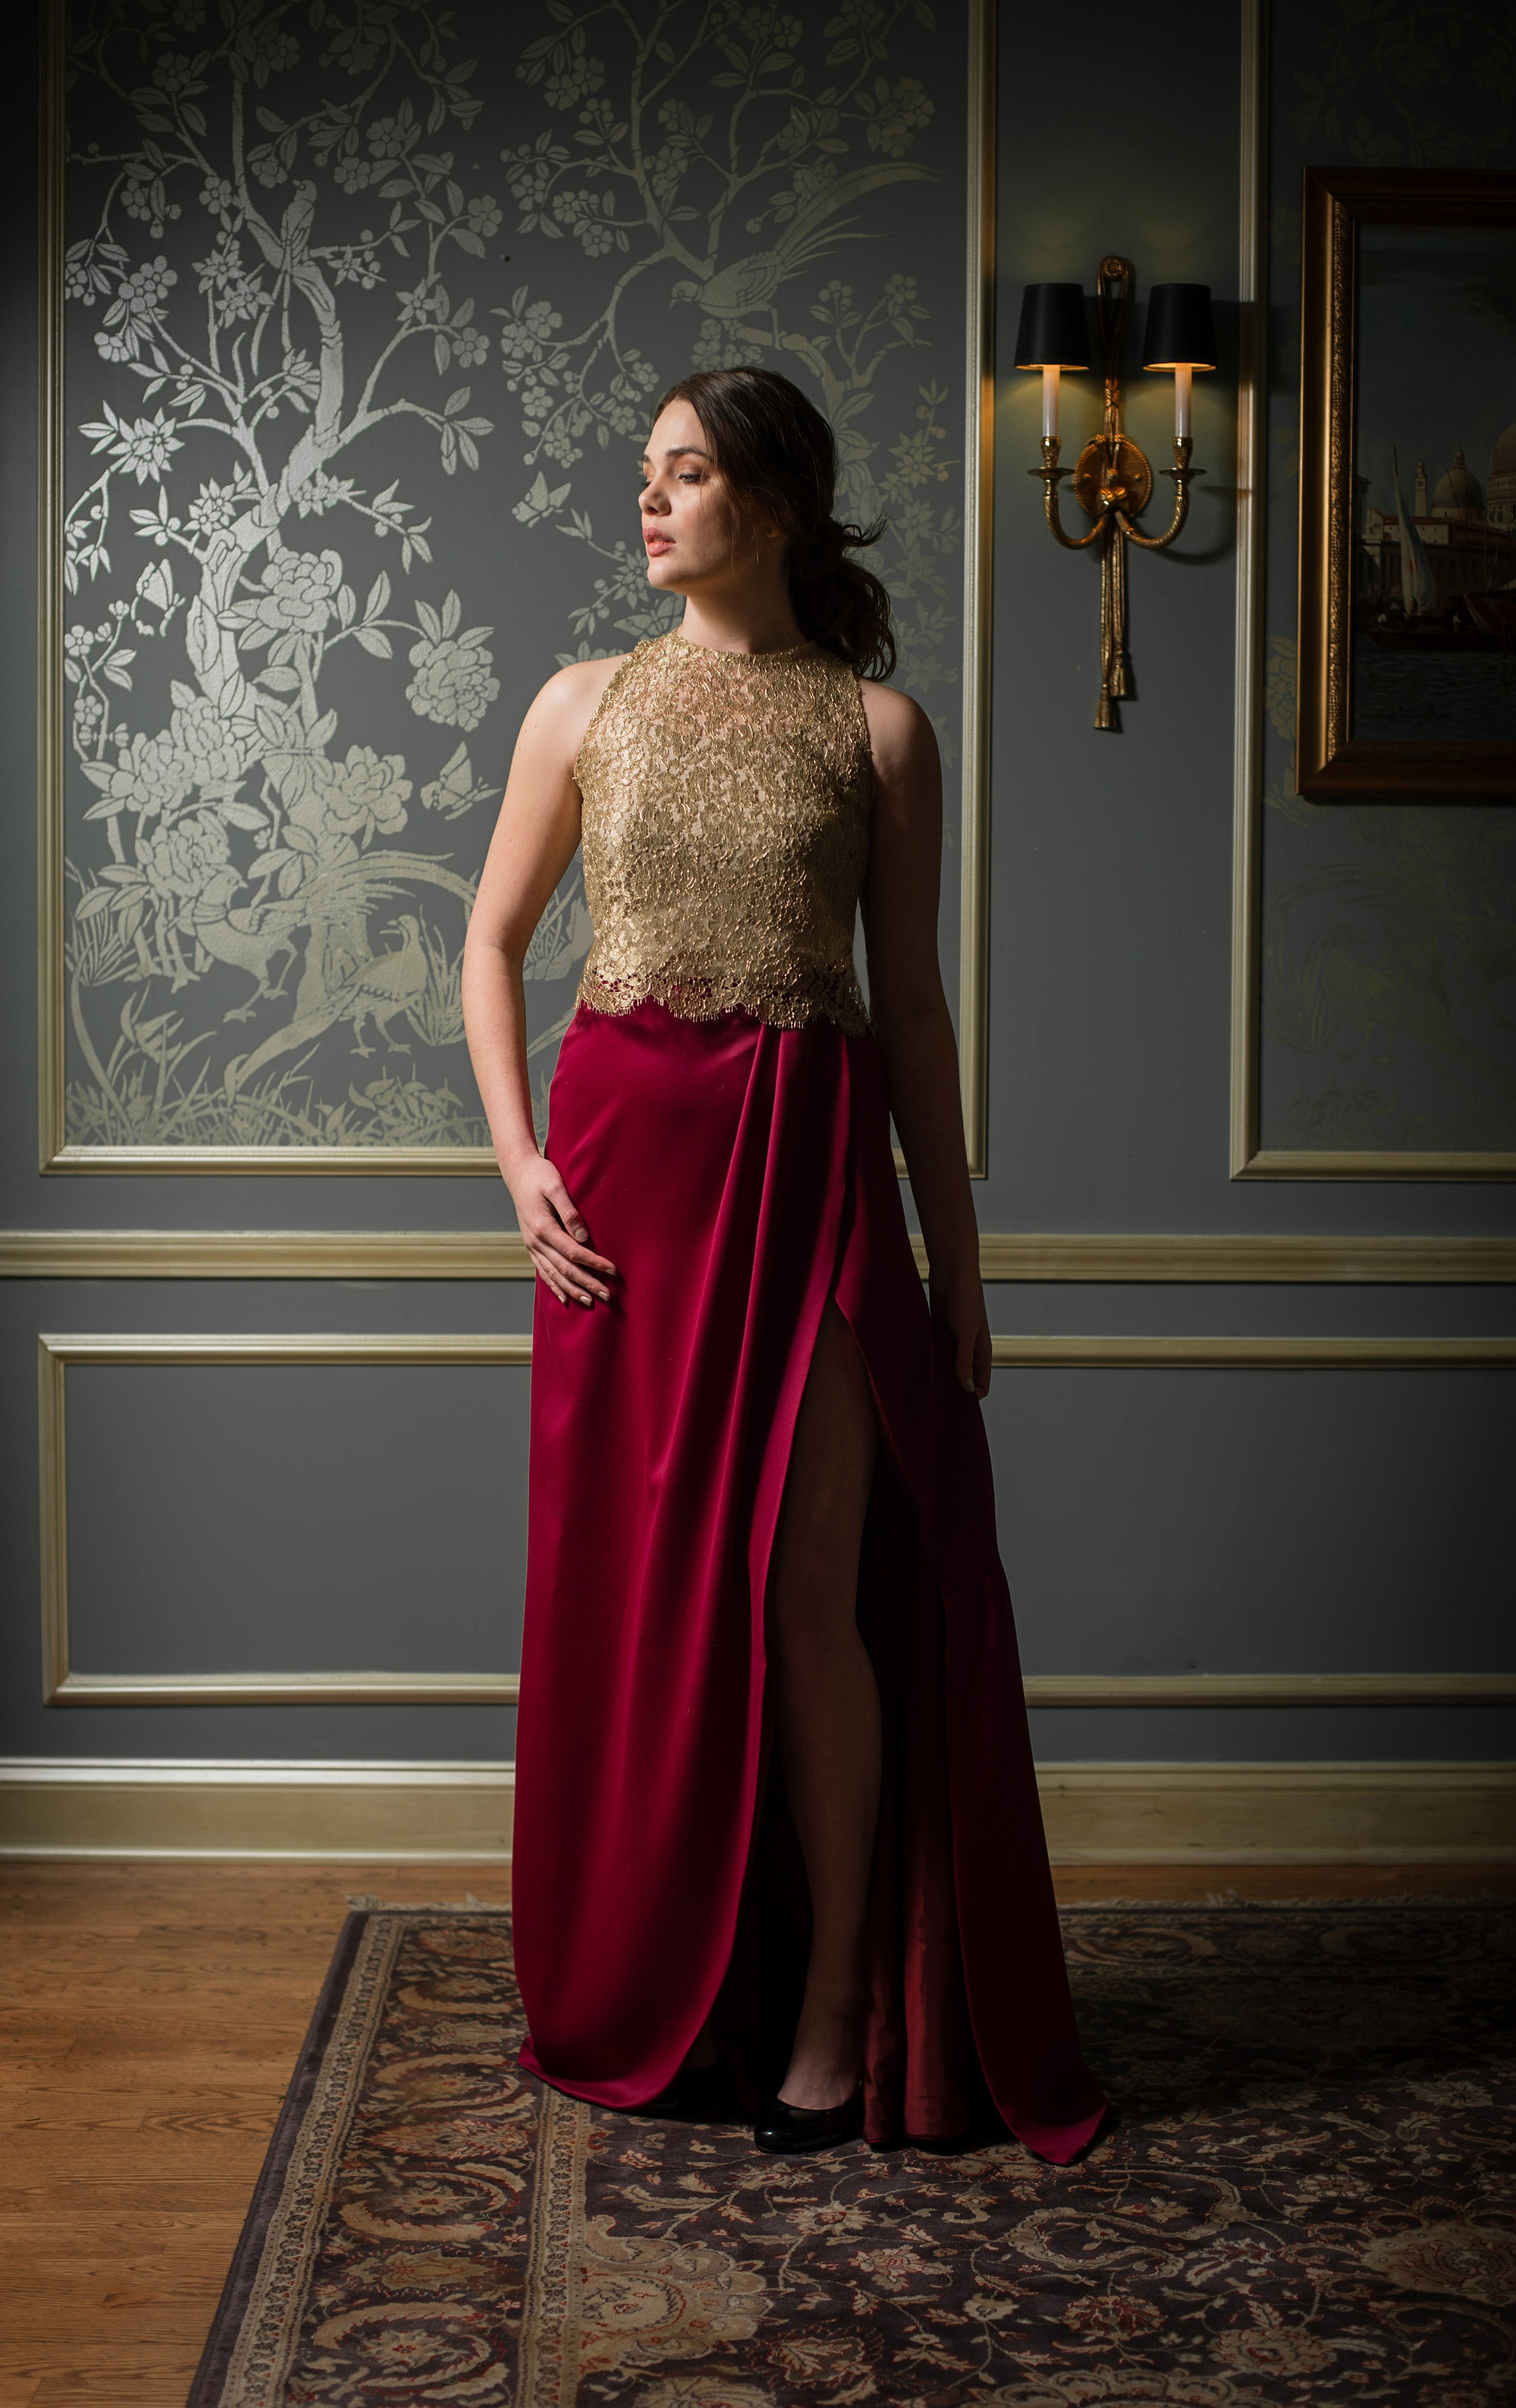 Gold lace top with red skirt.jpg